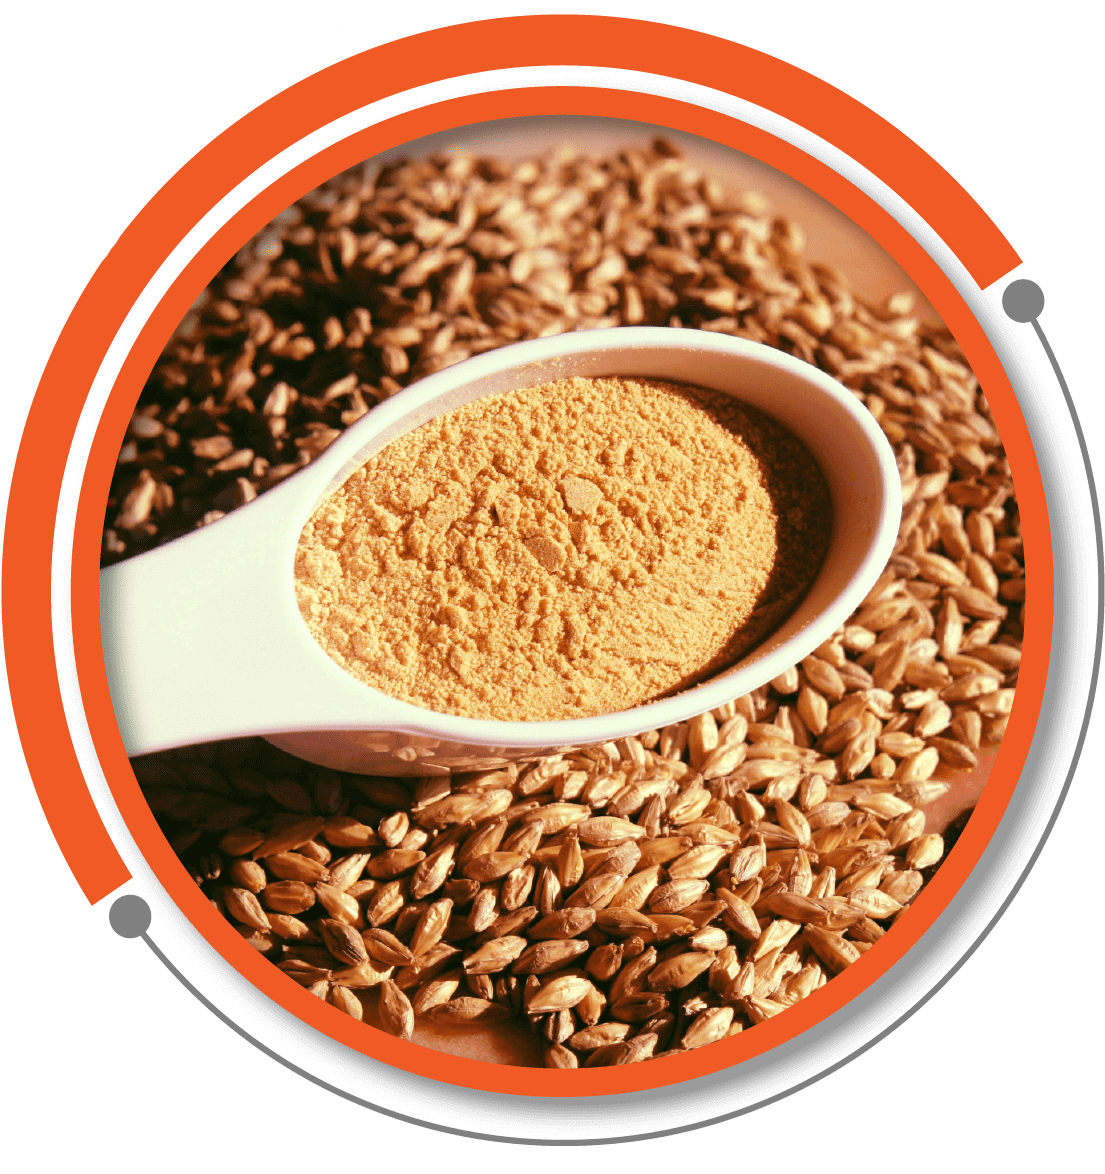 Malt Powder - Malt Extract Powder (Non-Diastatic) Manufacturer